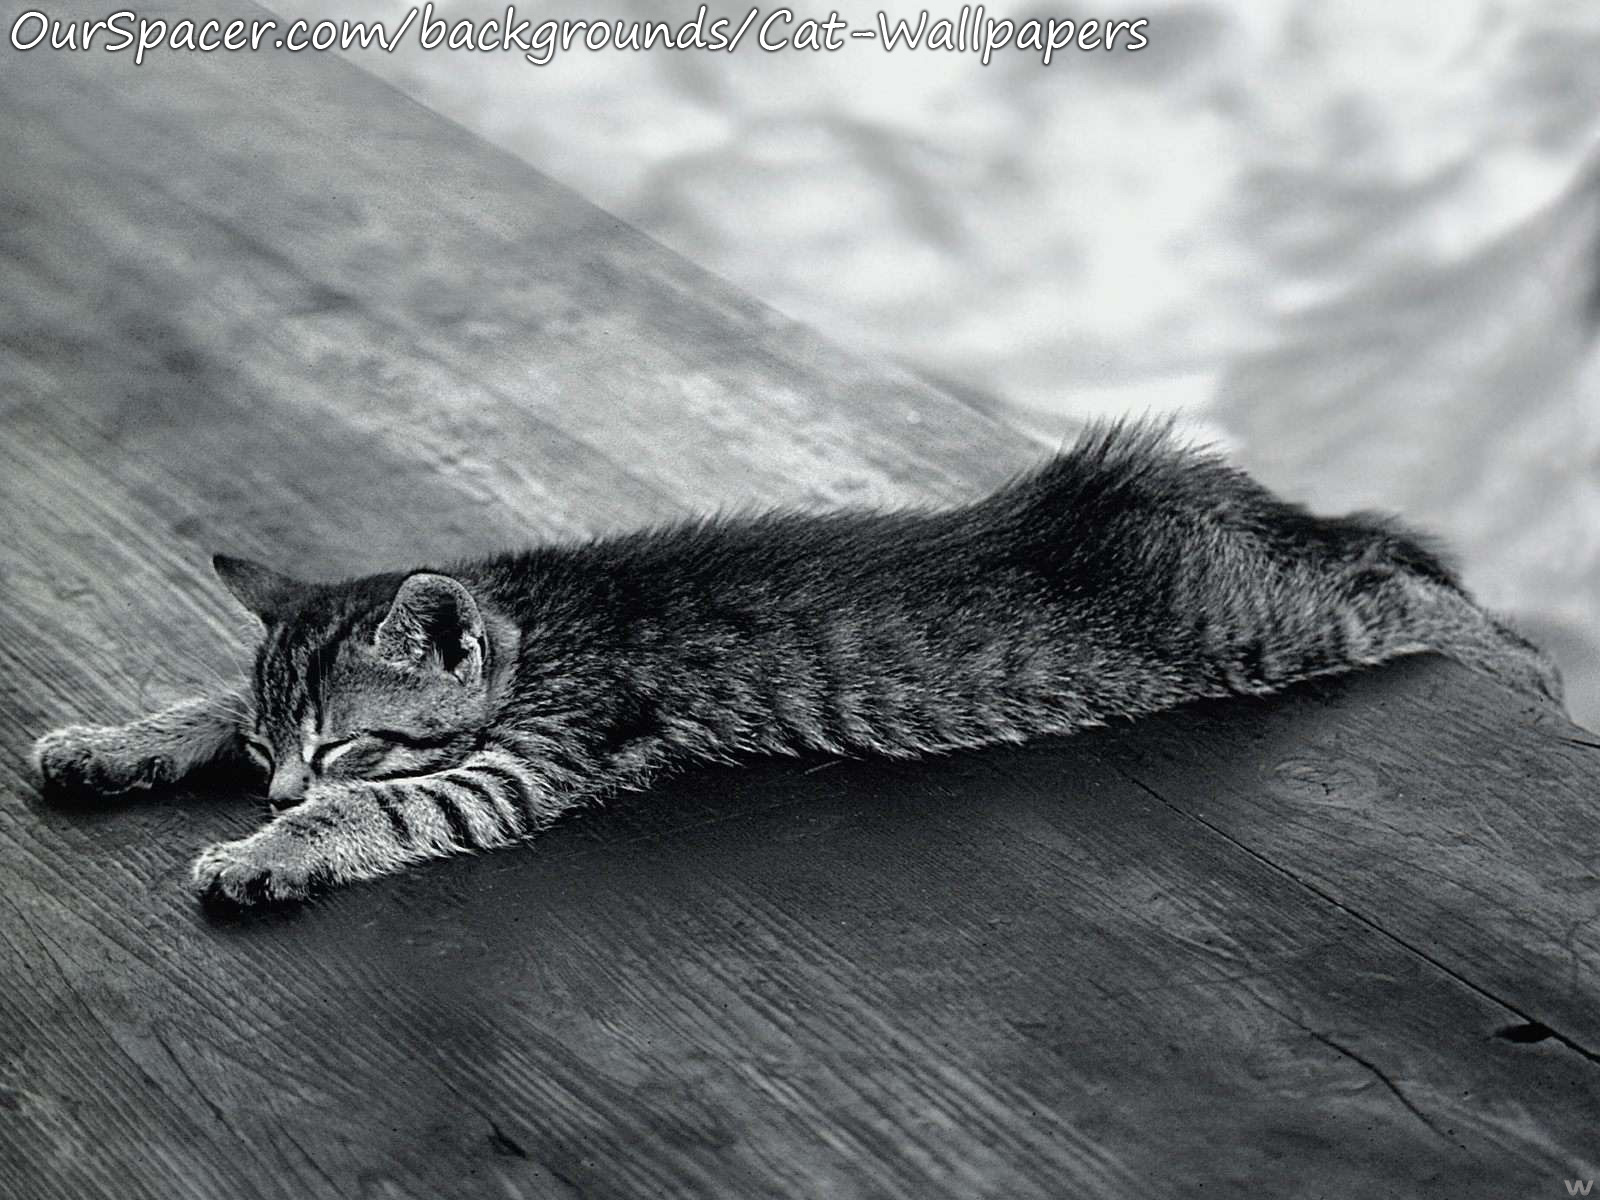 Black and white cat sprawled out on the deck wallpapers for myspace, twitter, and hi5 backgrounds